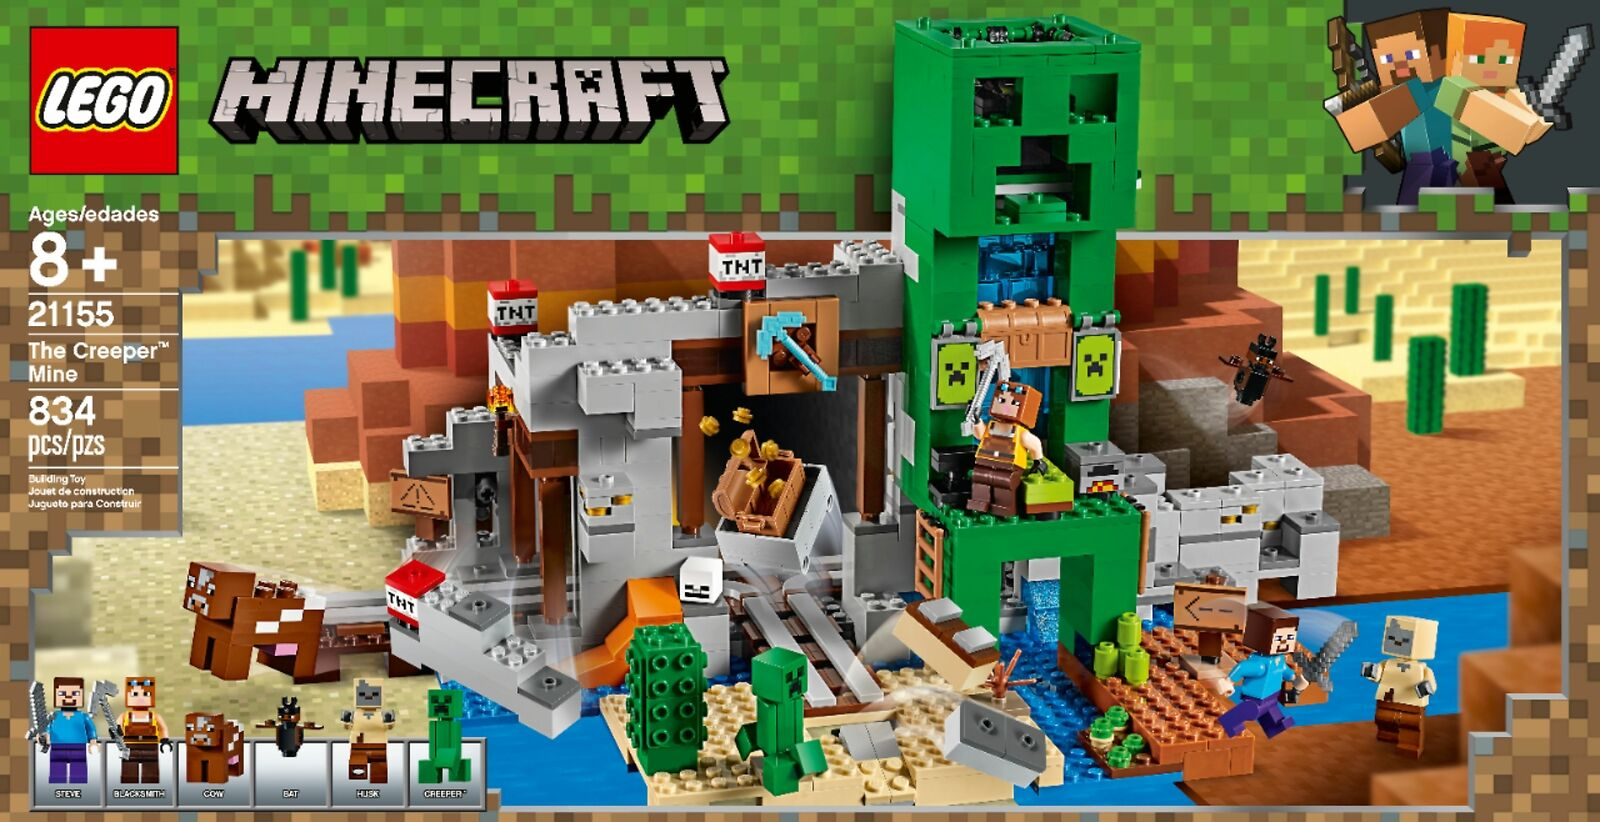 MINECRAFT TOYS Villager Blacksmith action Figure with Accessories